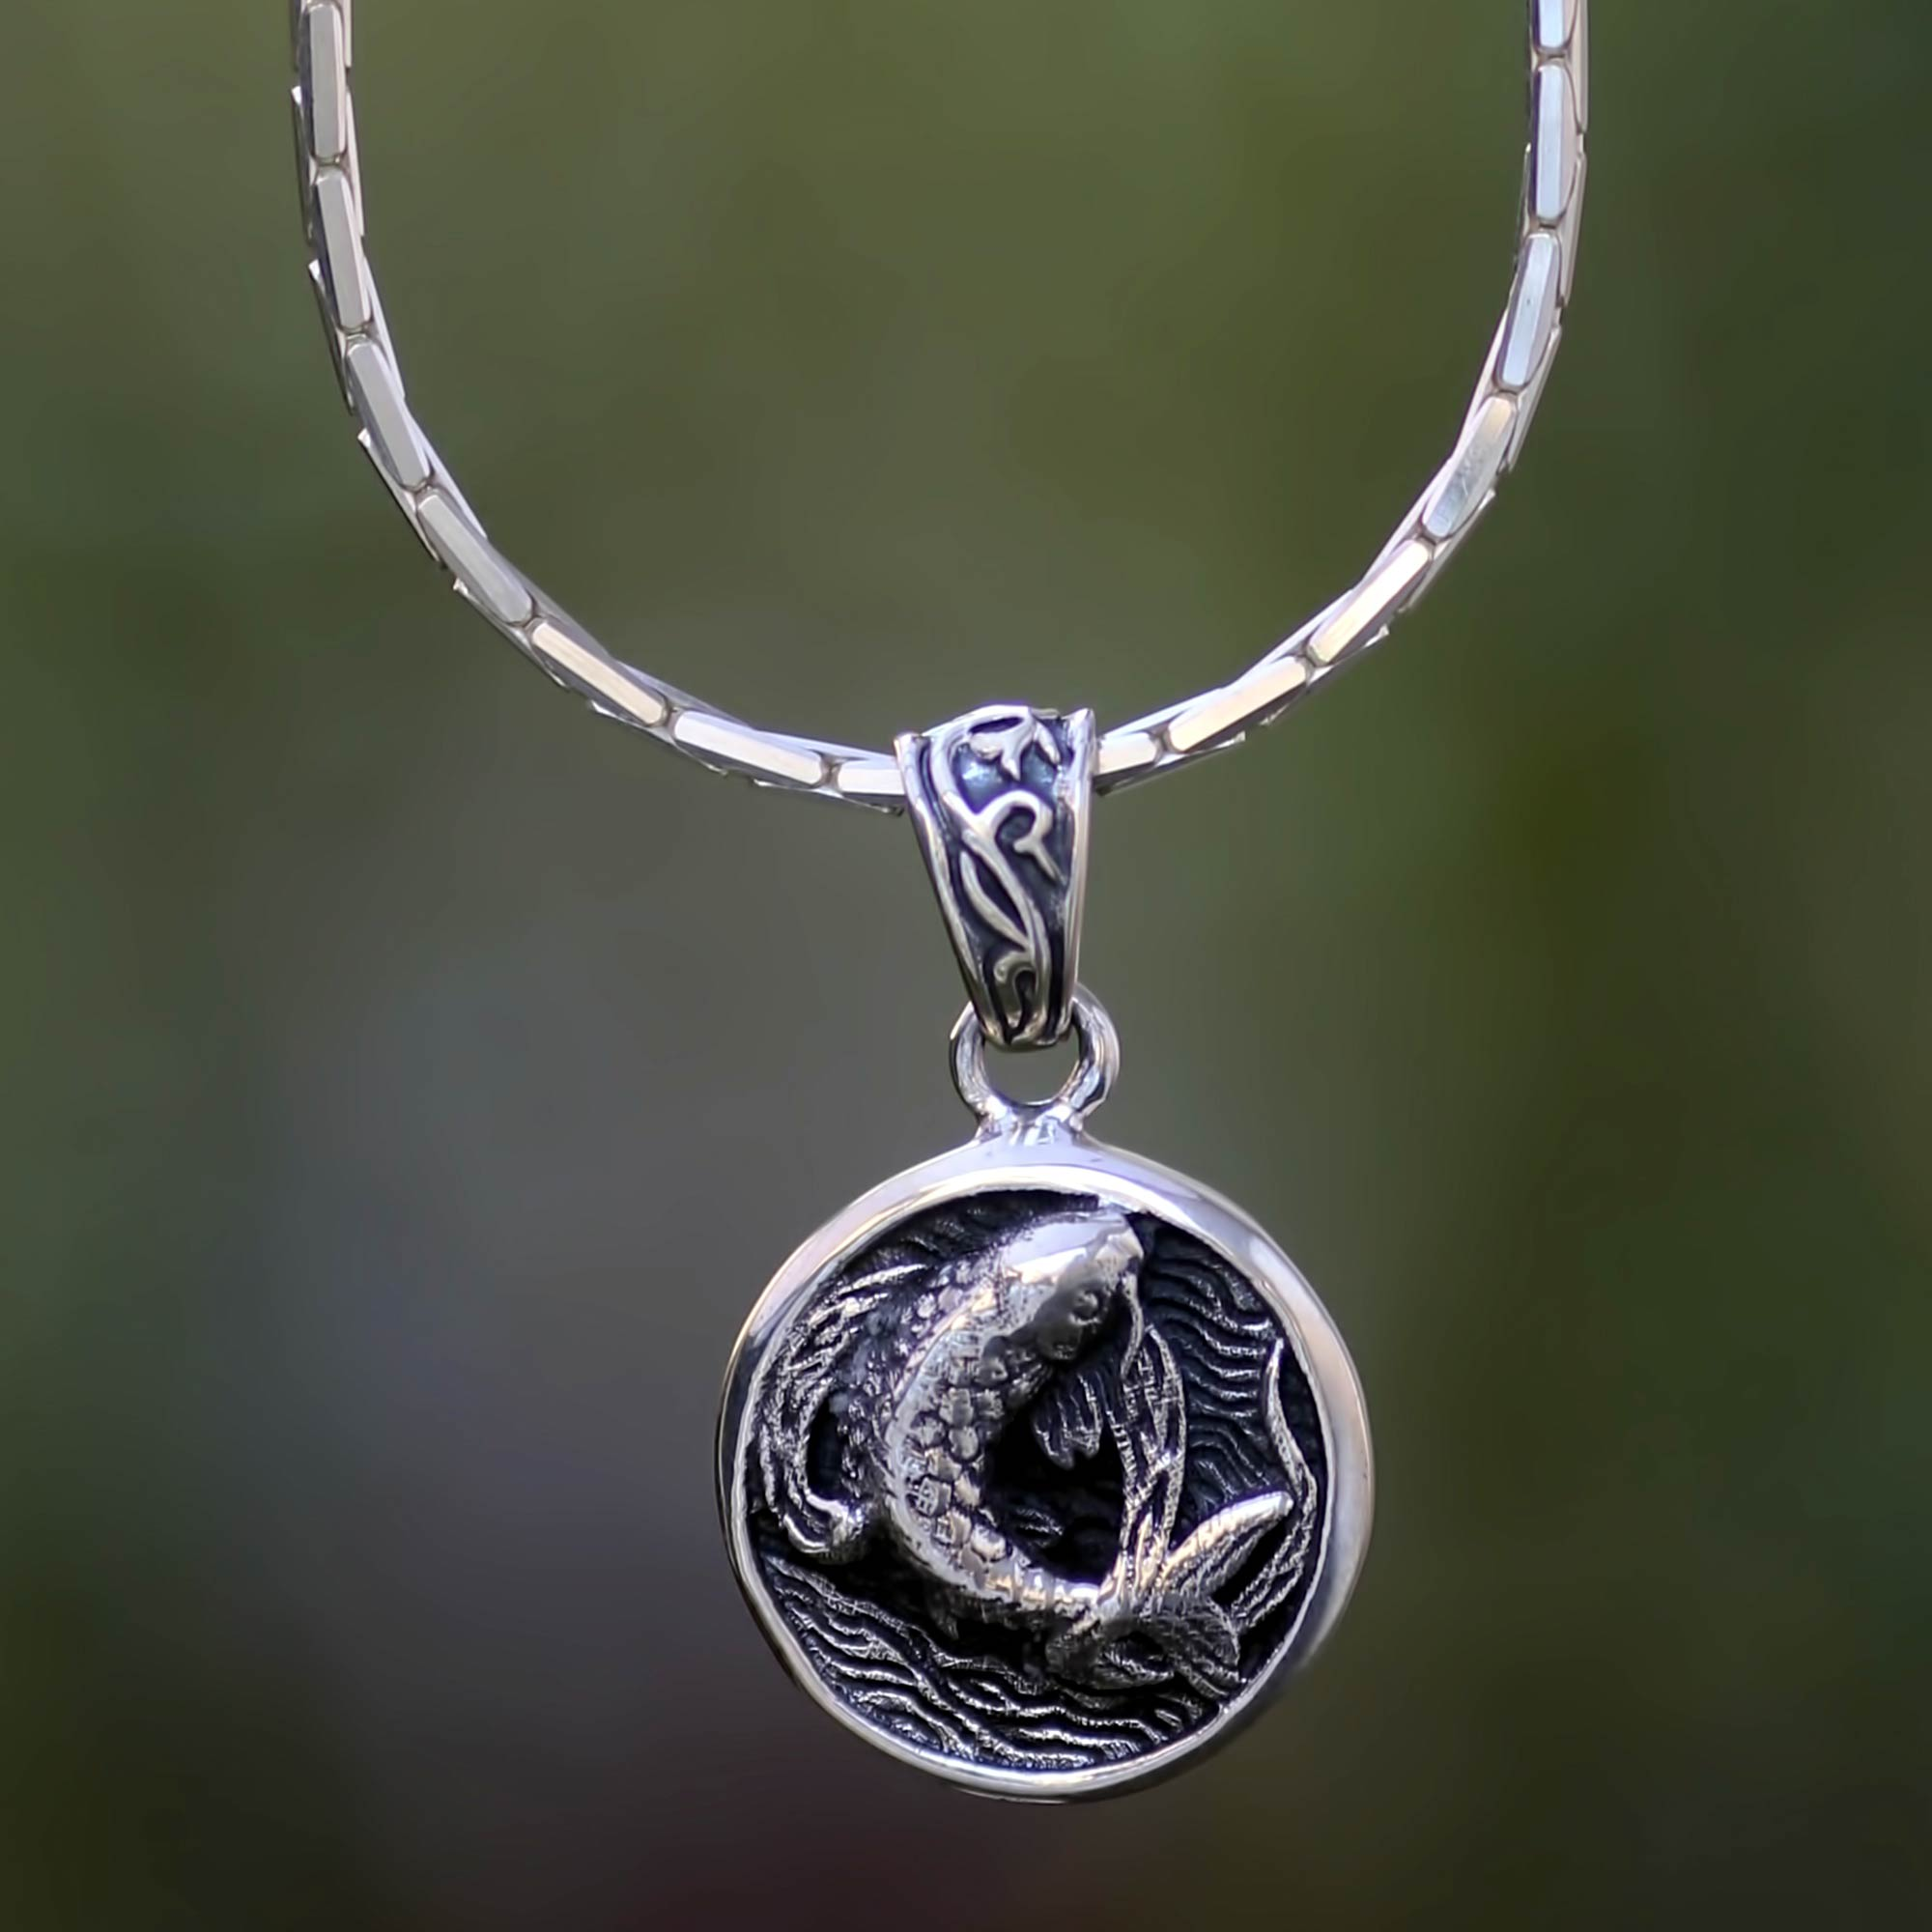 Unicef market sterling silver fish medallion necklace from bali win 3 artisans profit aloadofball Image collections